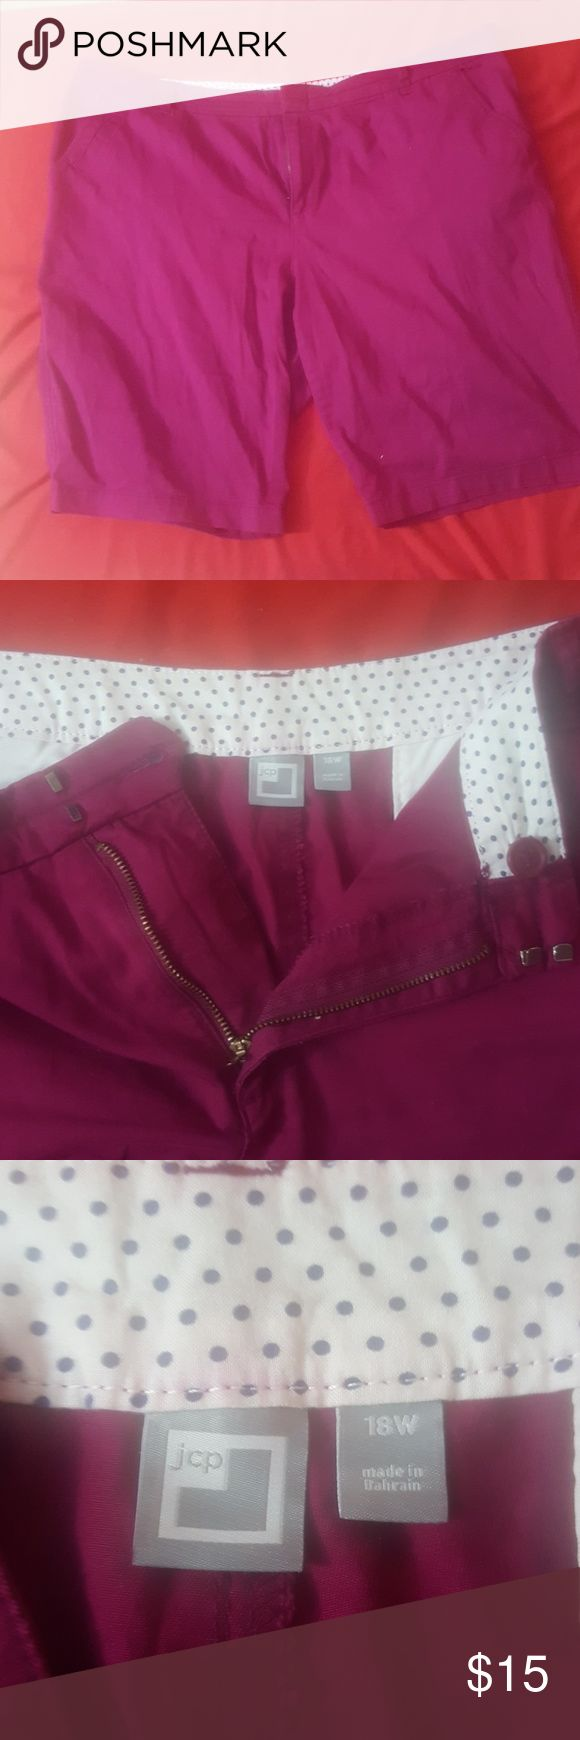 JCP Maroon shorts 18W JC Penny maroon shorts. Zip/button closure. Flat back pockets. Flat side pockets w/small coin pocket. jcpenney Shorts